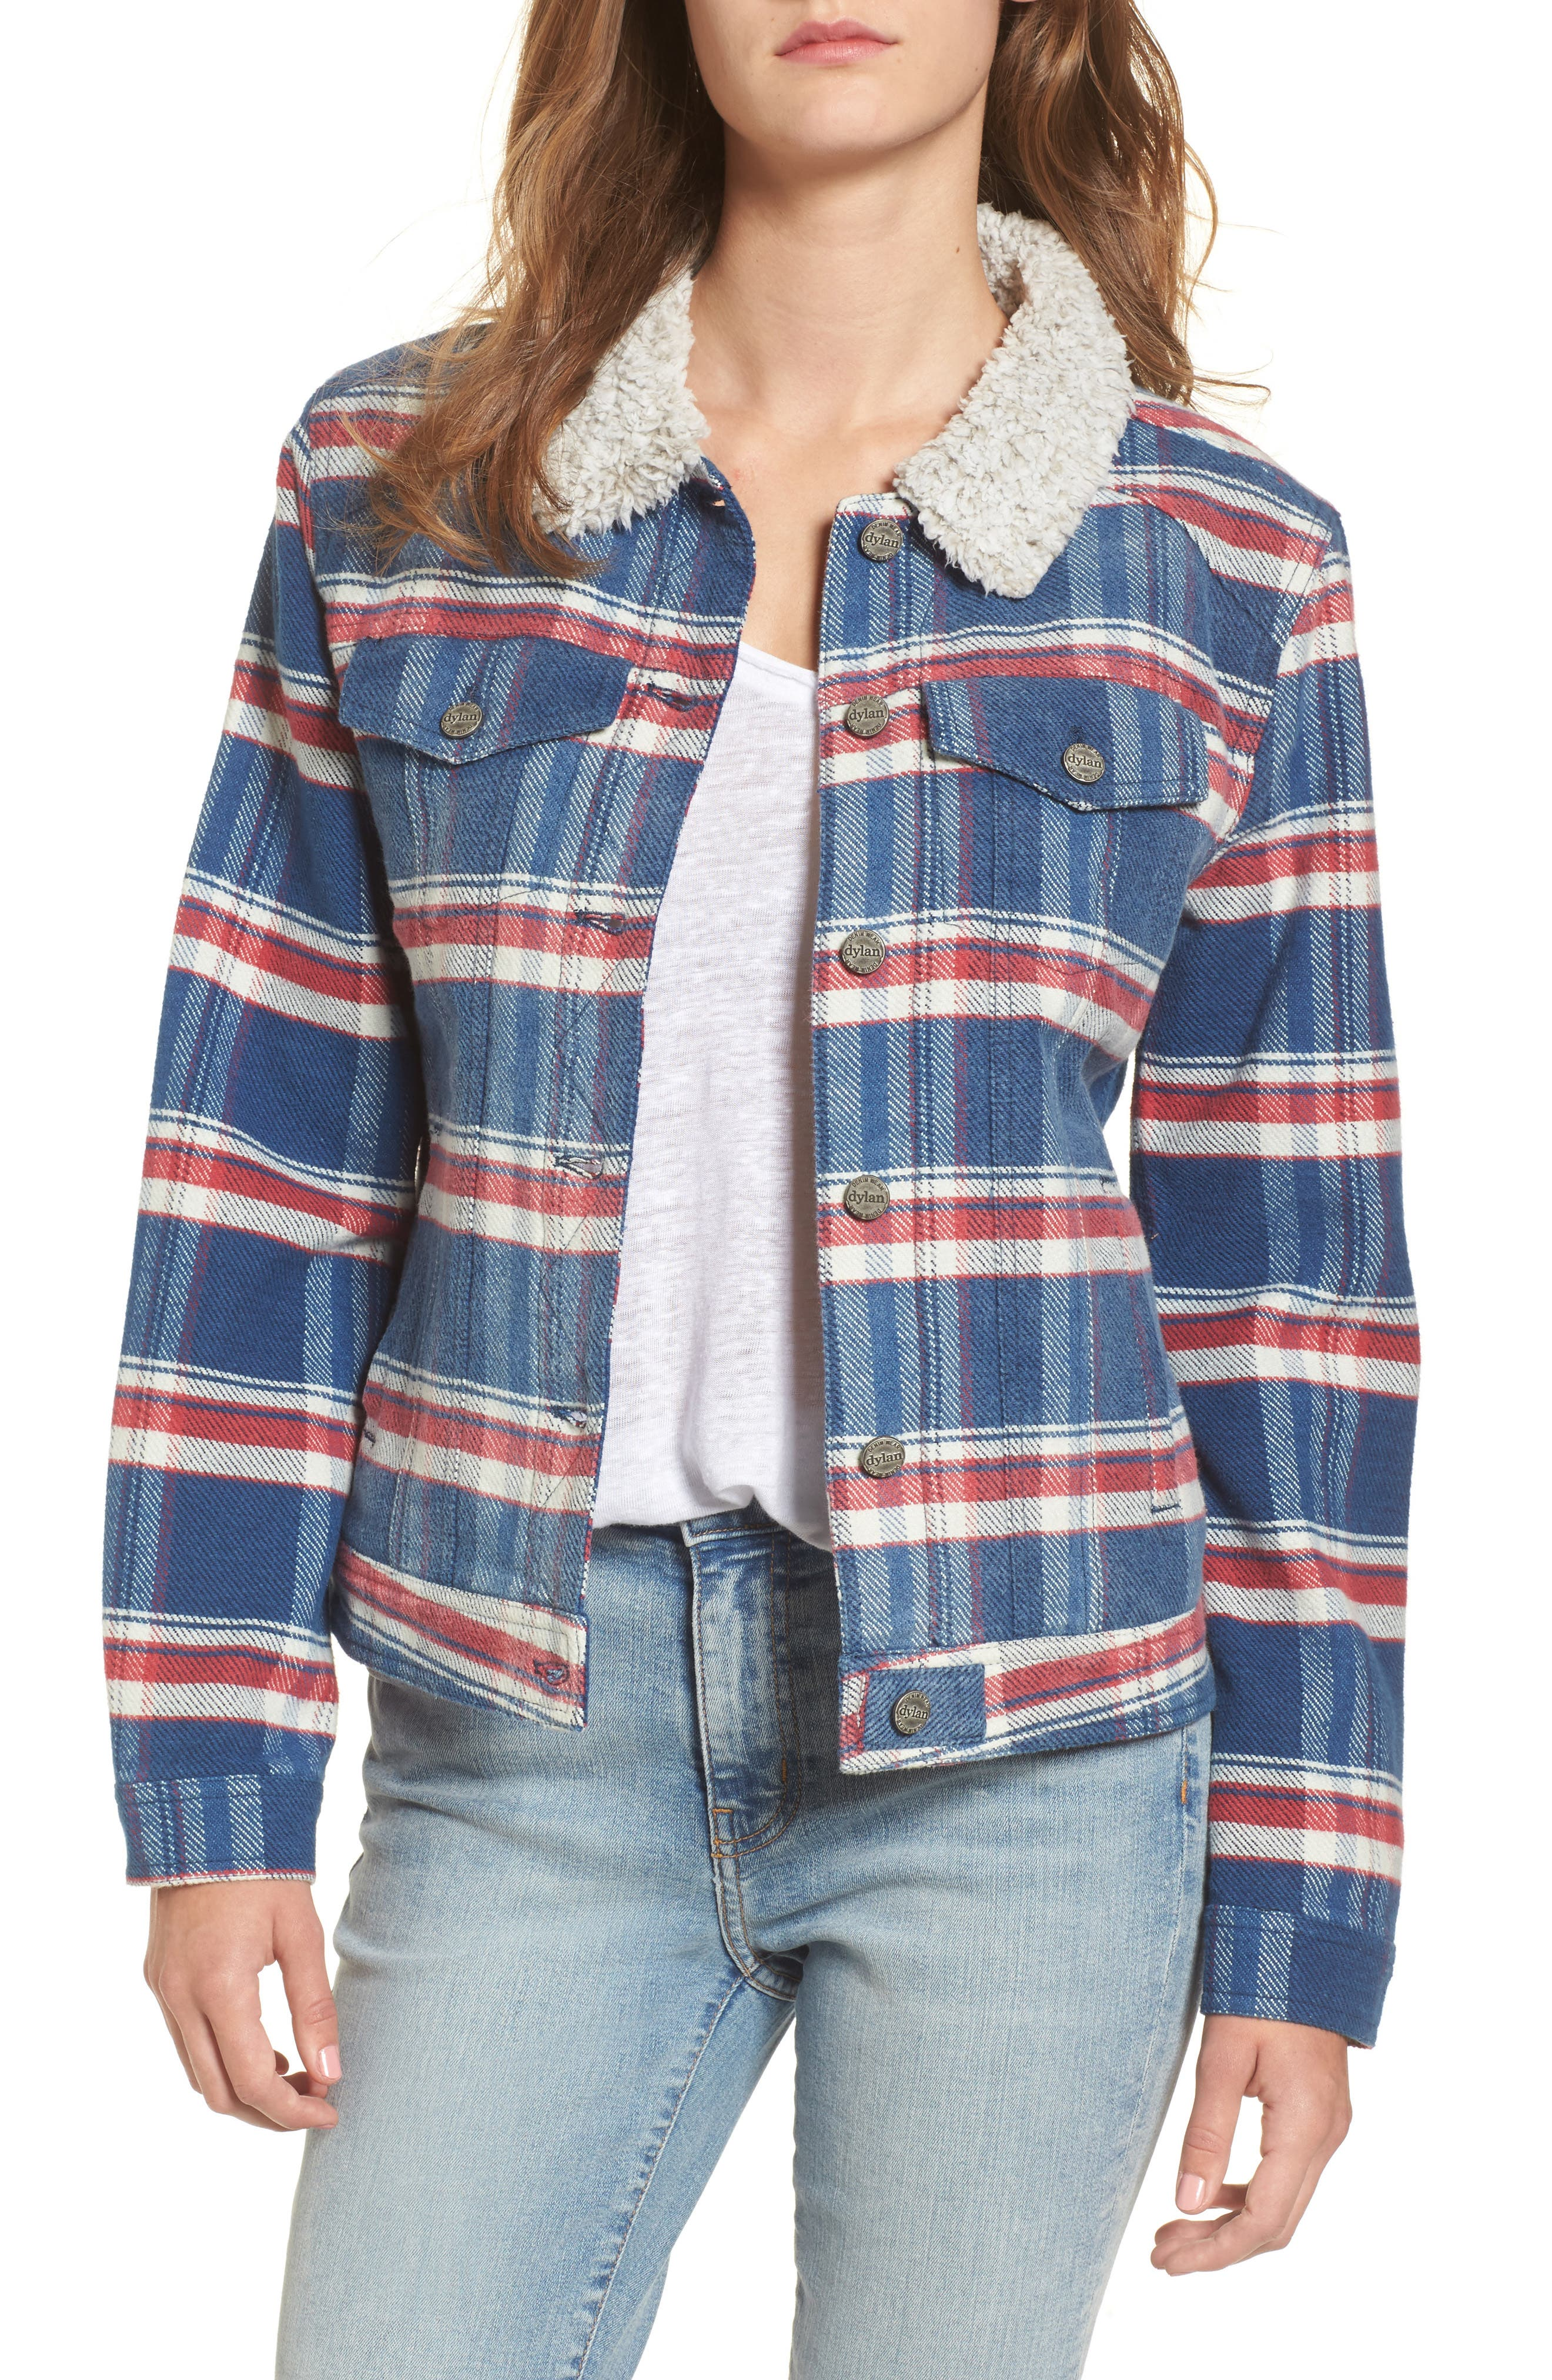 Alternate Image 1 Selected - Dylan Ella Plaid Denim Jacket with Faux Shearling Collar